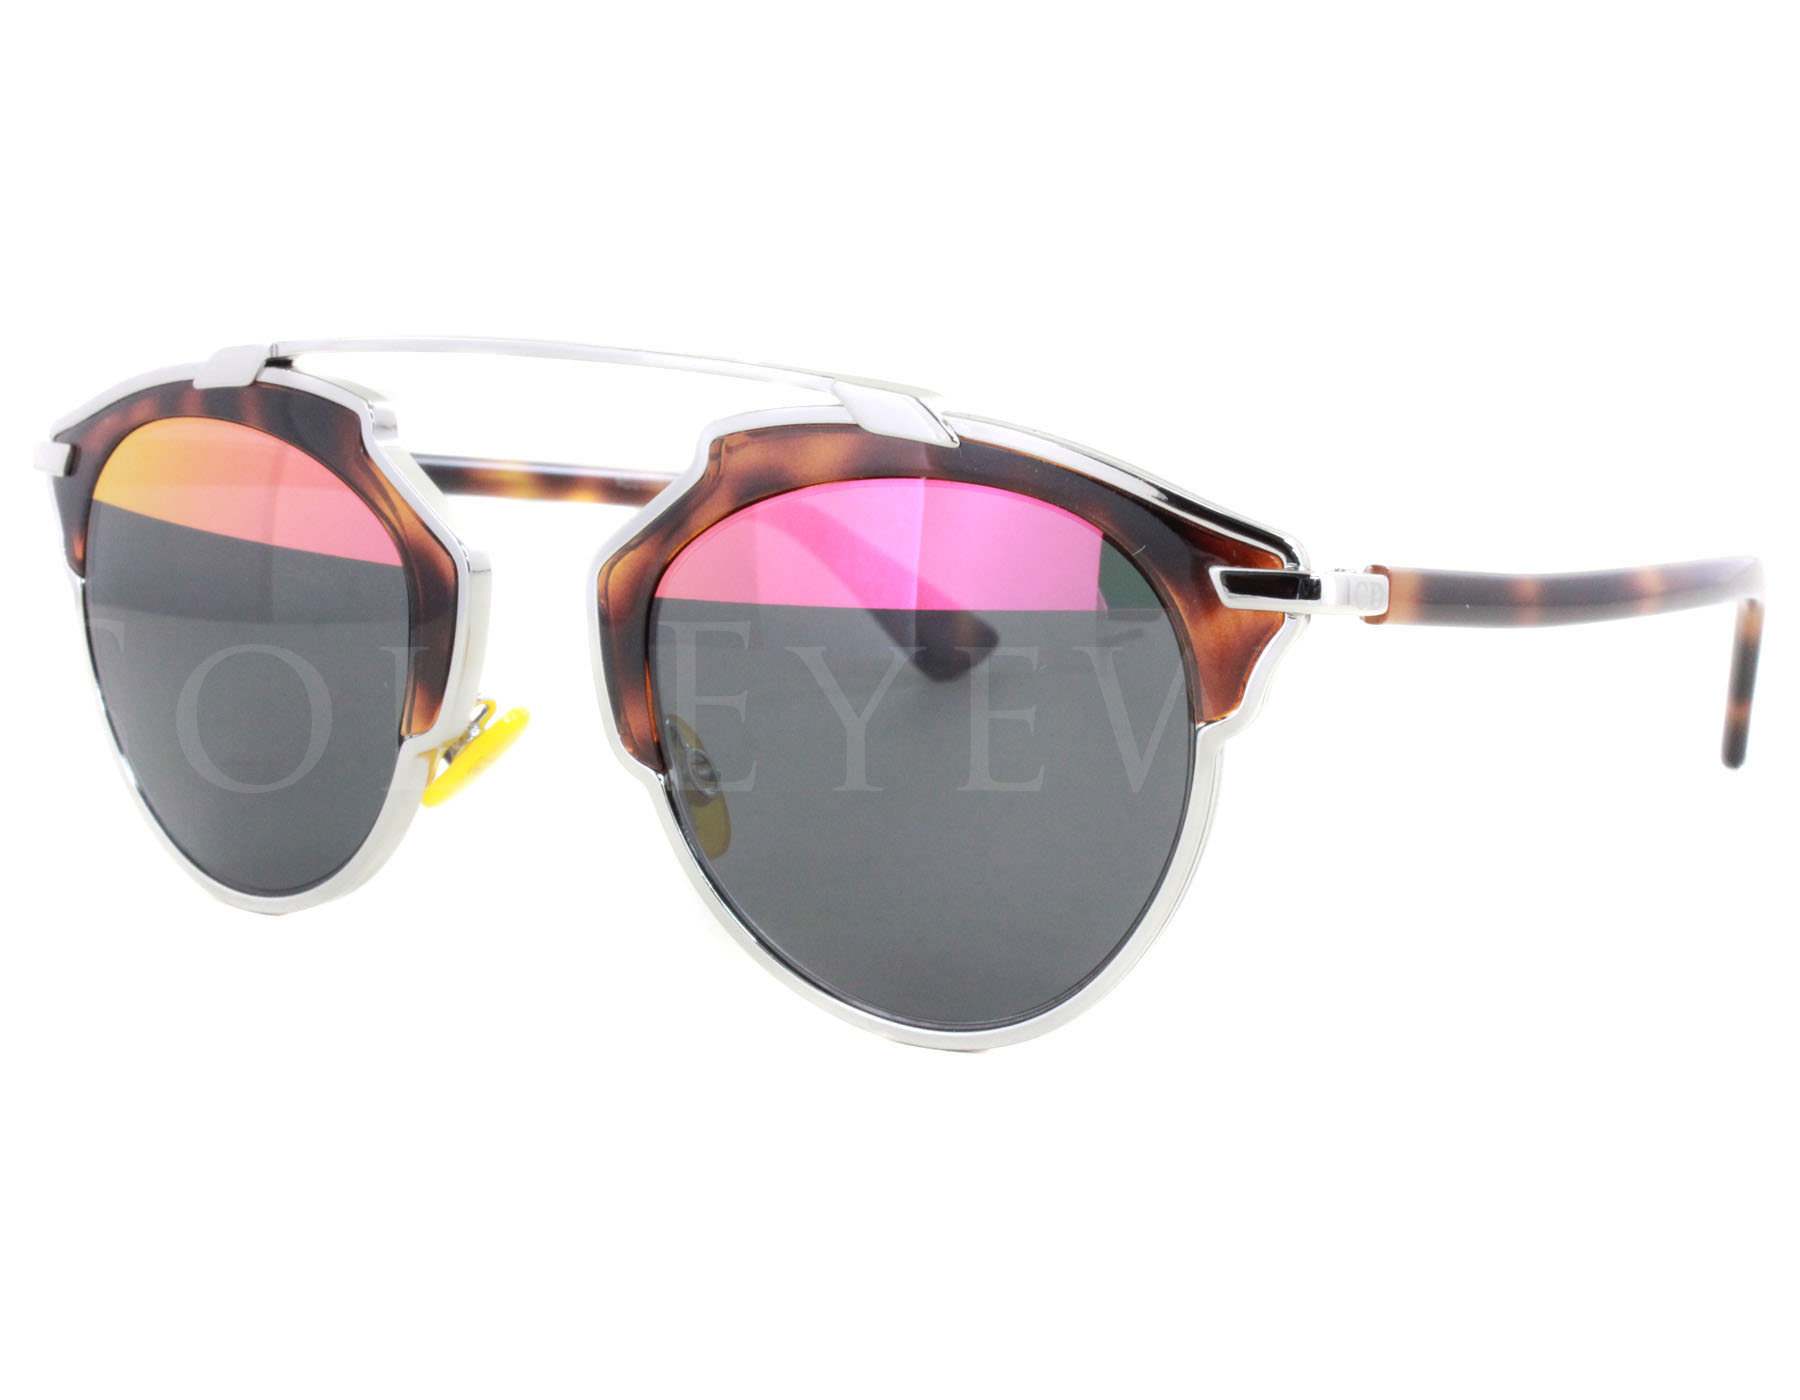 9a4a978b903 Details about NEW Christian Dior So Real AOOTT Havana Tortoise   Grey Pink  Mirror Sunglasses